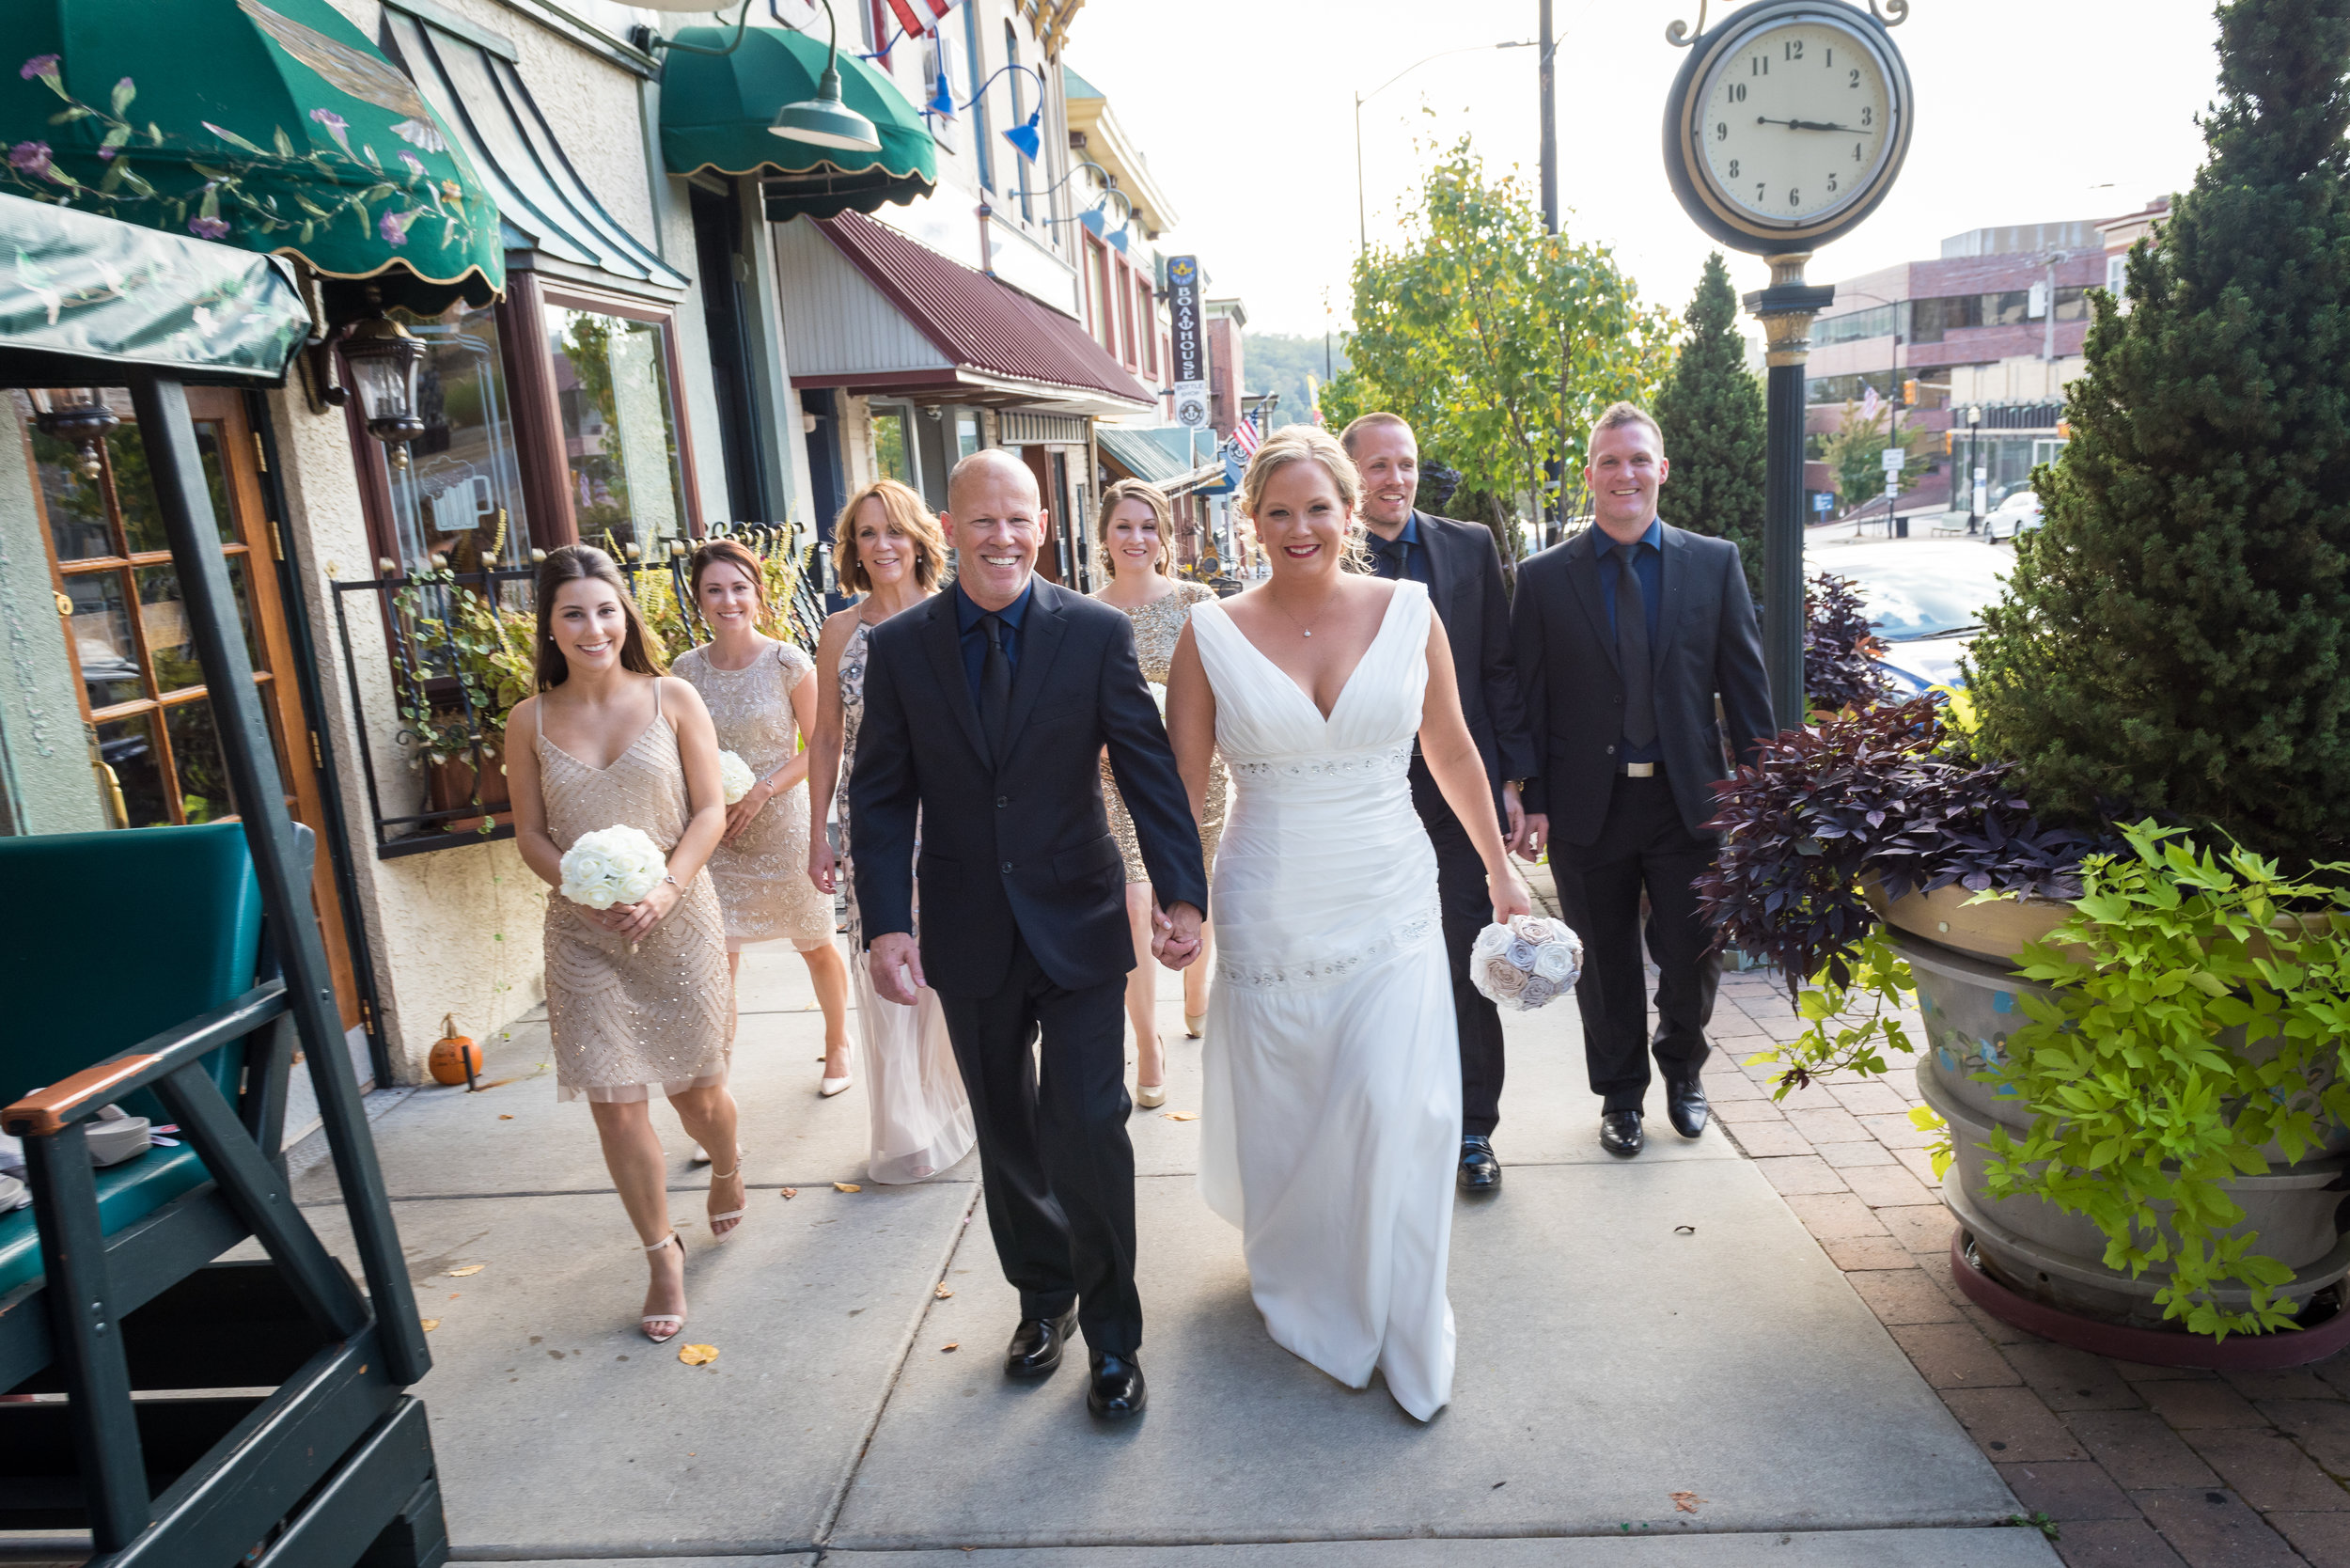 It was a great autumn day in Conshohocken, PA when Pat and Elisa decided to tie the knot at Great American Pub,123 Fayette St, Conshohocken, PA 19428. Here the bridal party walks up Fayette Street next to the infamous Conshy Time Clock.